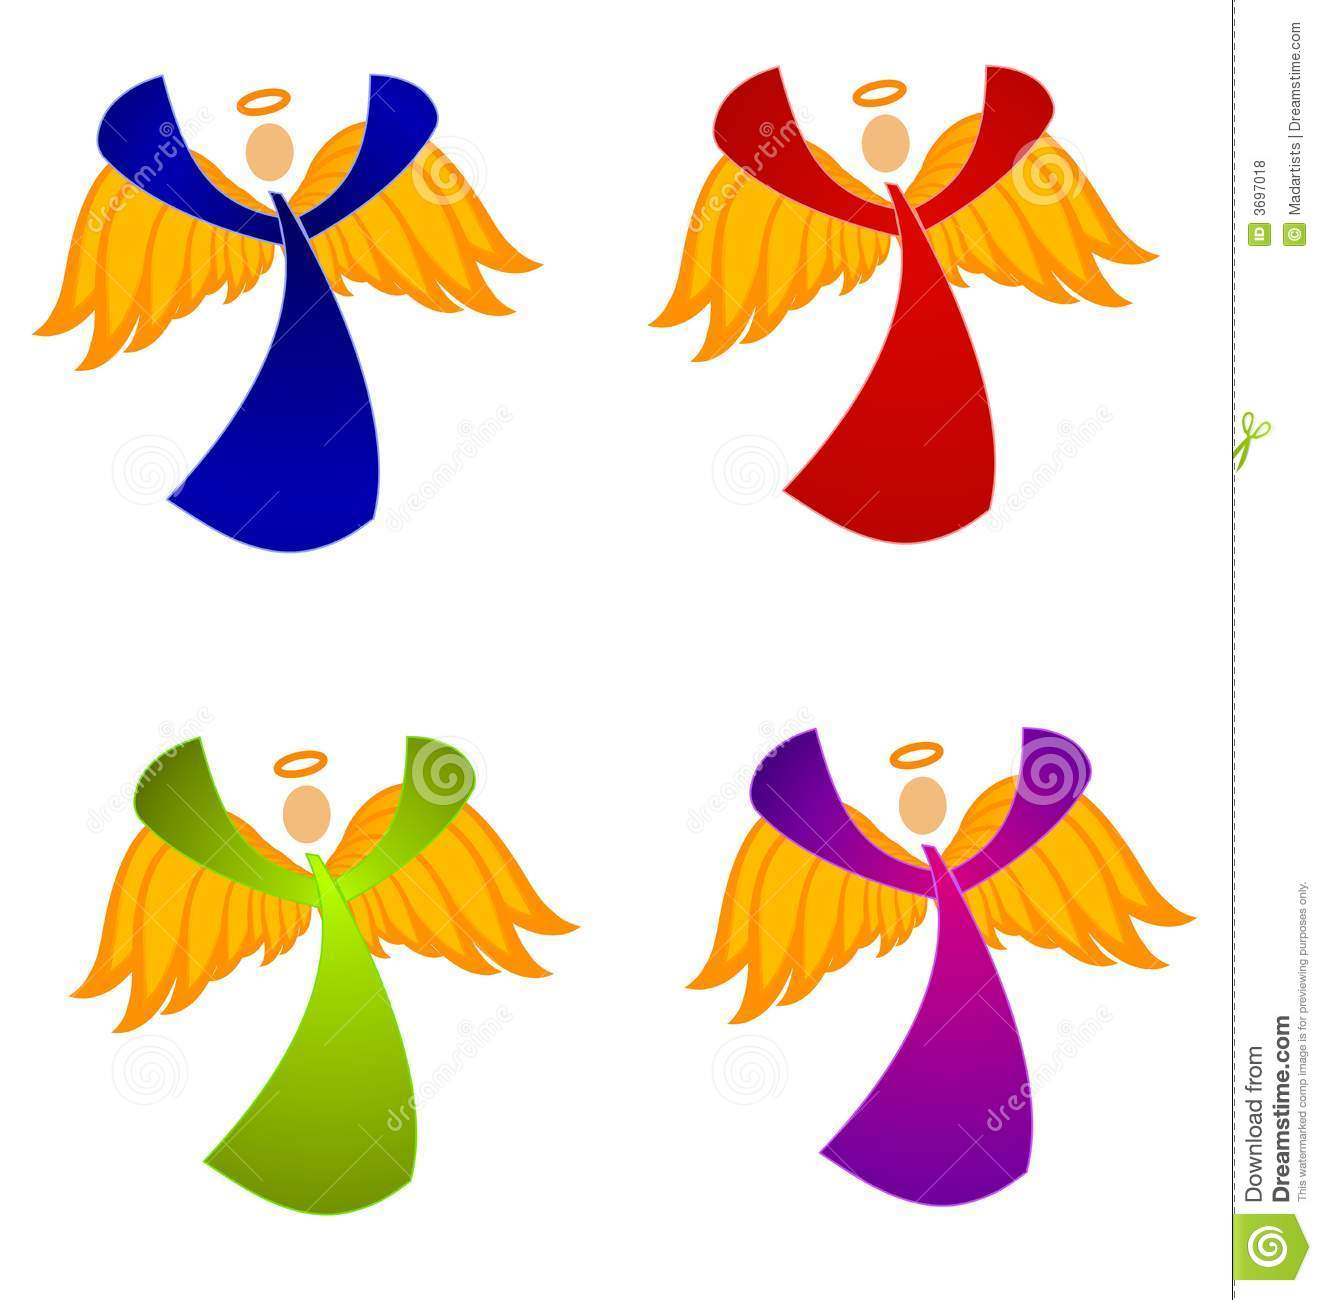 angel clip art free printable clipart panda free clipart images rh clipartpanda com clip art angels with open arms clipart angels free